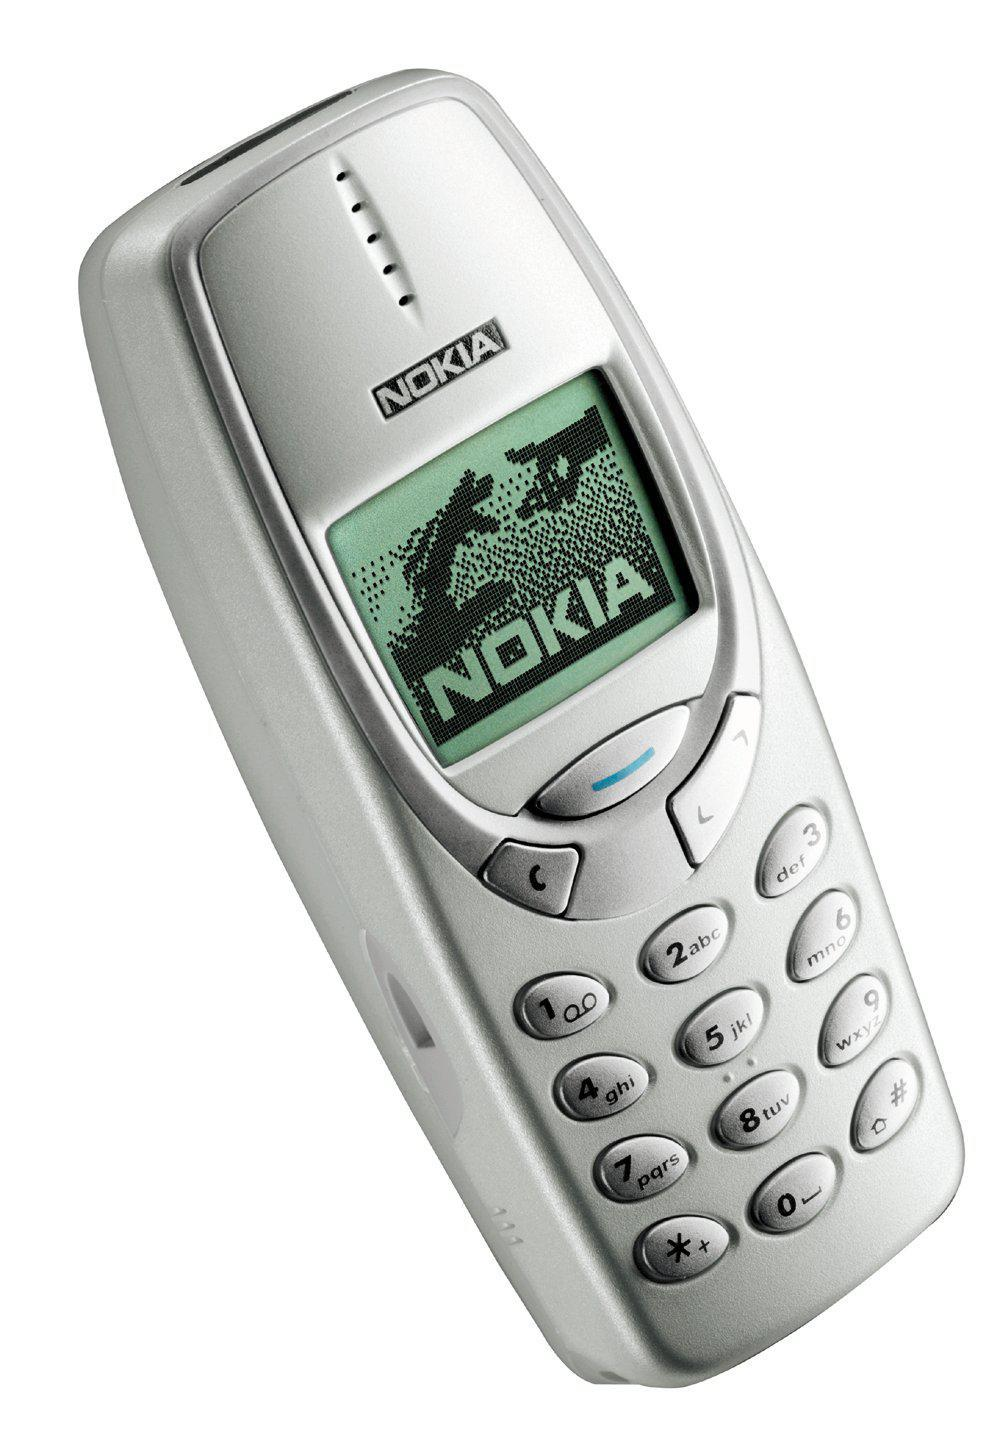 Nokia 3310 will be relaunched later this year, manufacturers have today confirmed